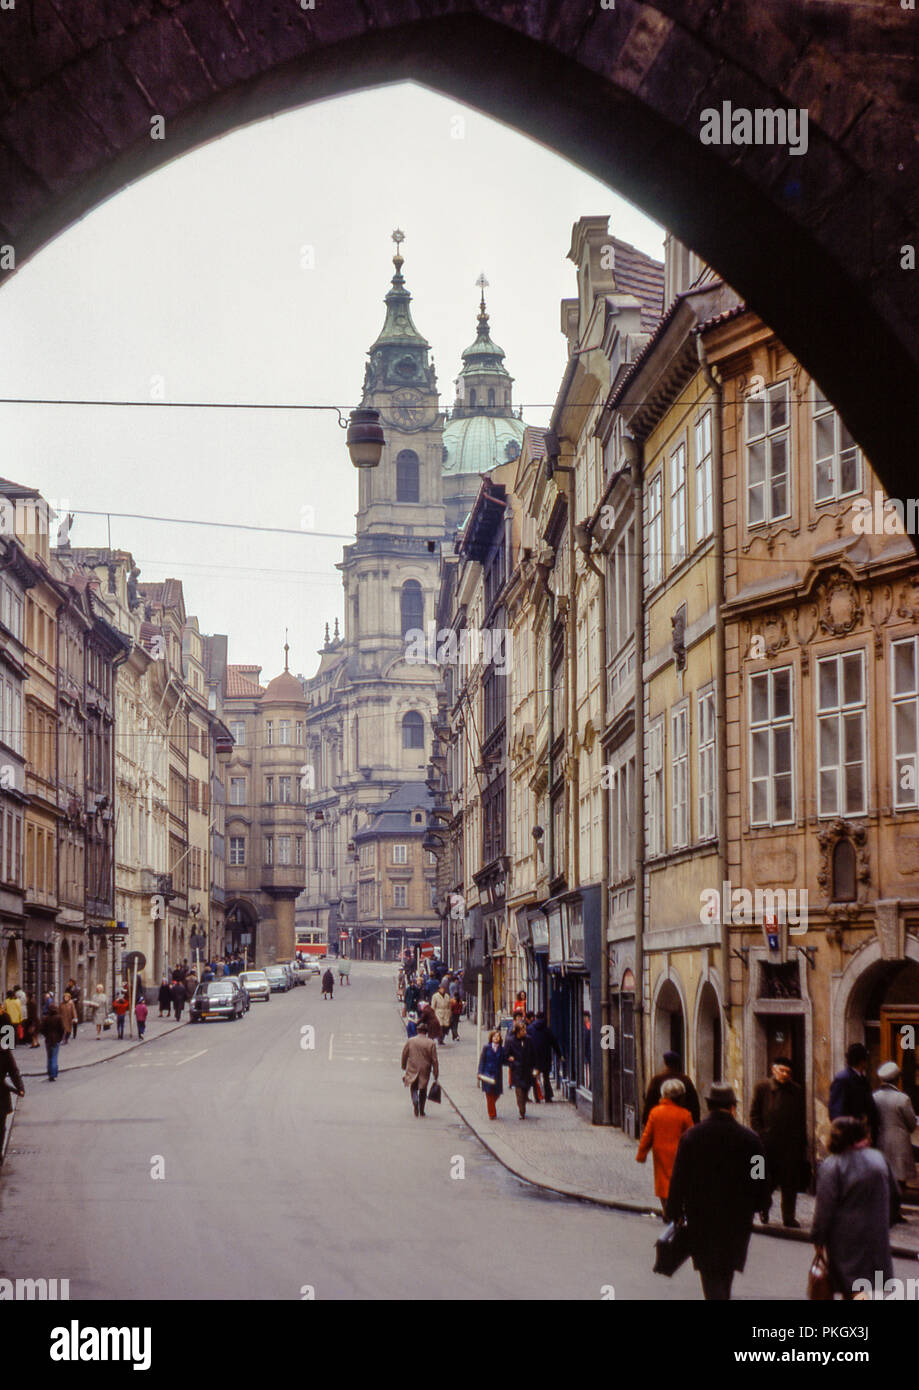 View of St Nicholas Church from underneath Lesser Town Bridge Tower in Prague, Czechoslovakia in April 1974. Original Archive Photo. - Stock Image